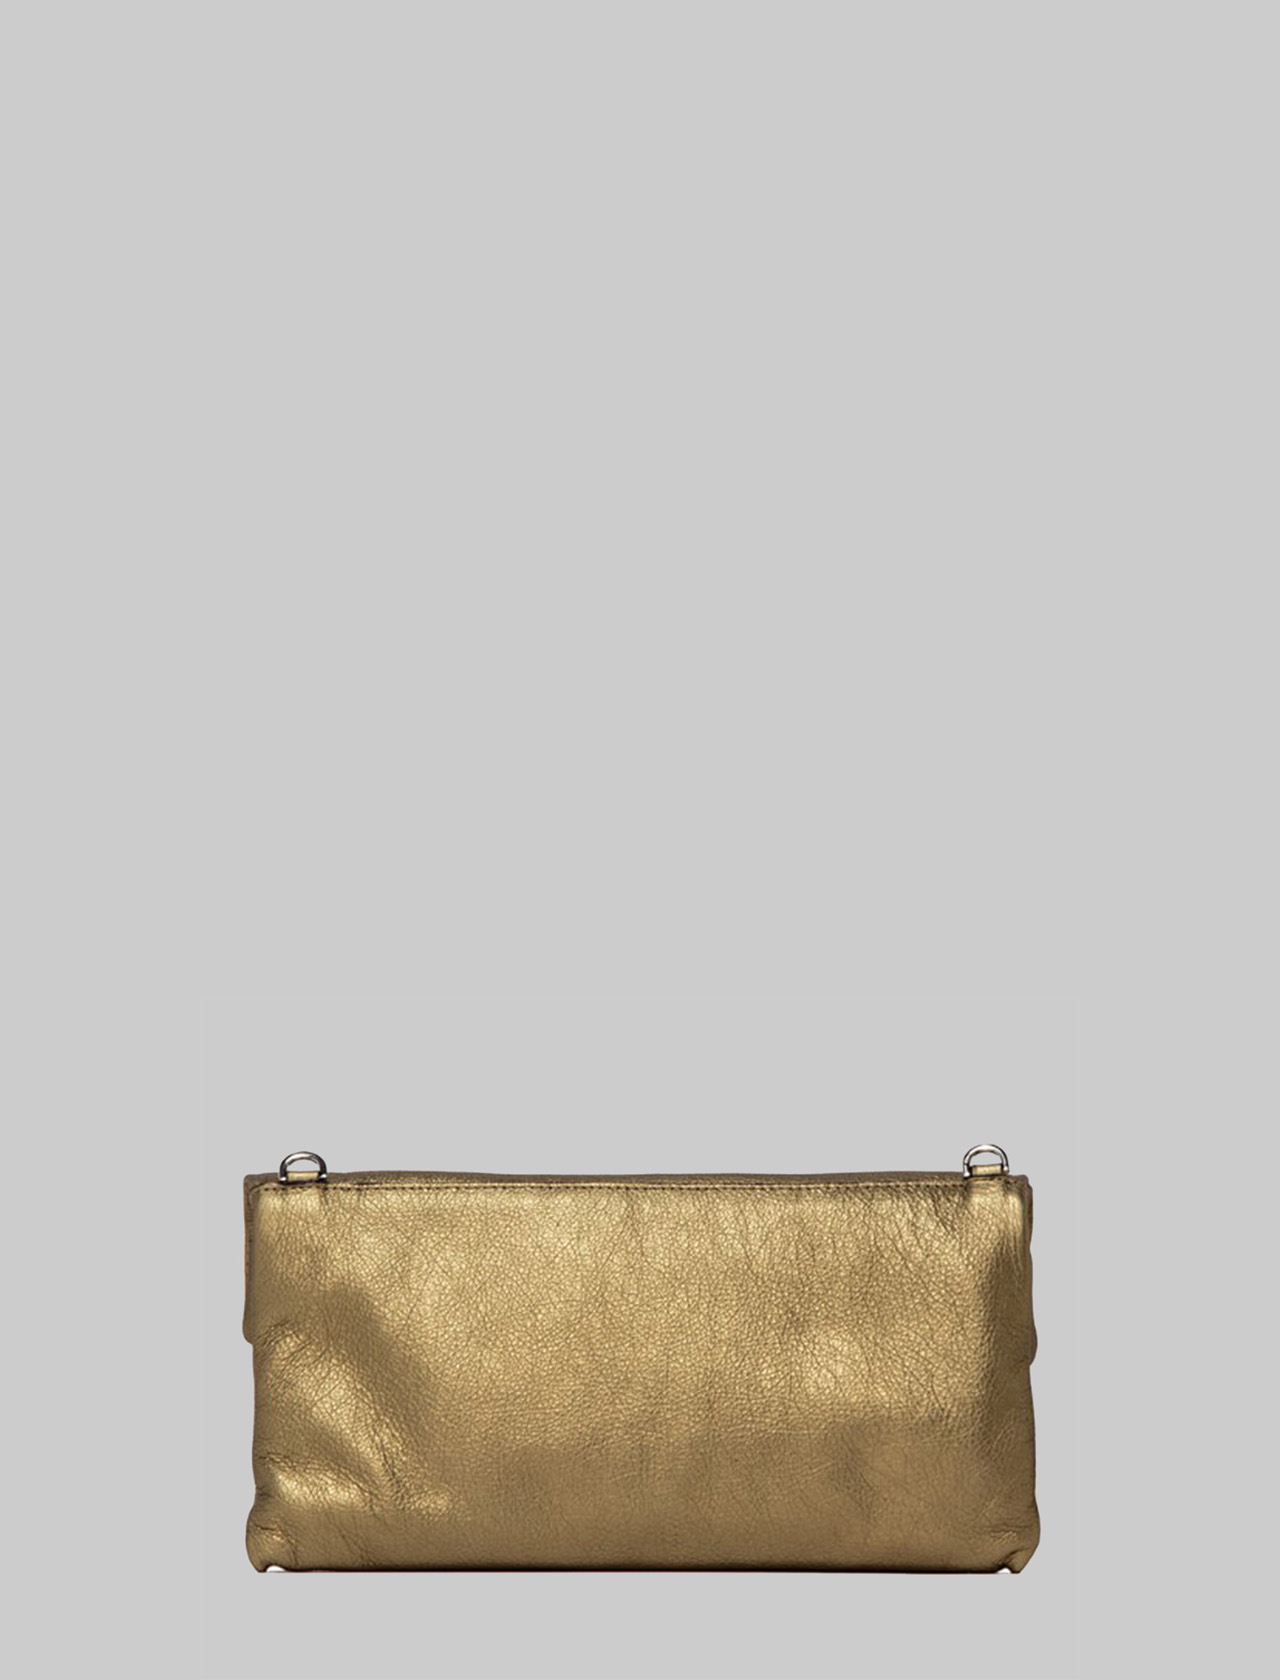 Cherry Small Woman's Clutch Bag In Champagne Leather With Tone Removable Shoulder Strap Gianni Chiarini | Bags and backpacks | BS7374448